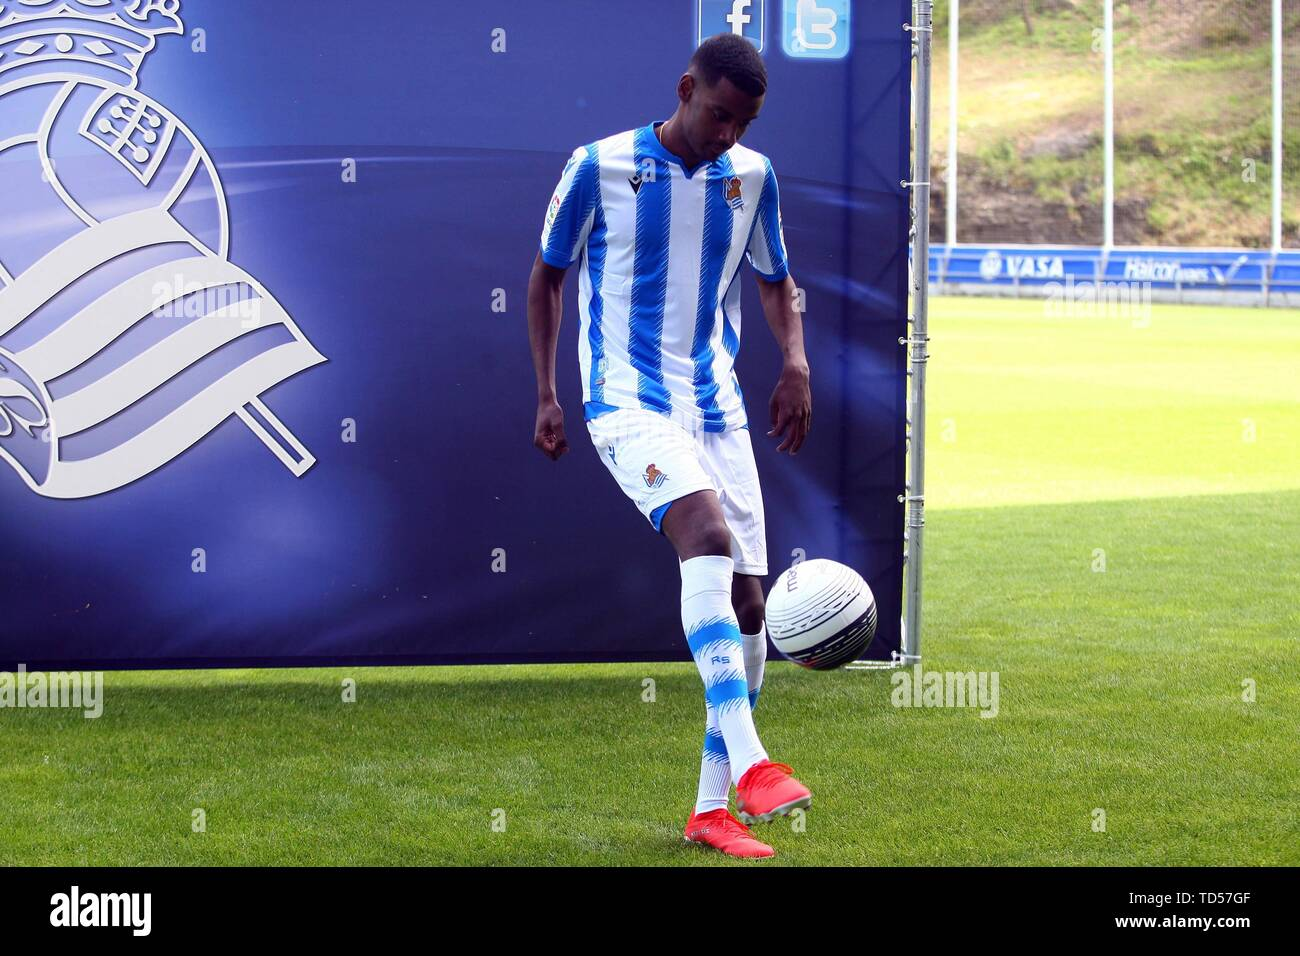 Swedish Football Player Stock Photos & Swedish Football Player Stock